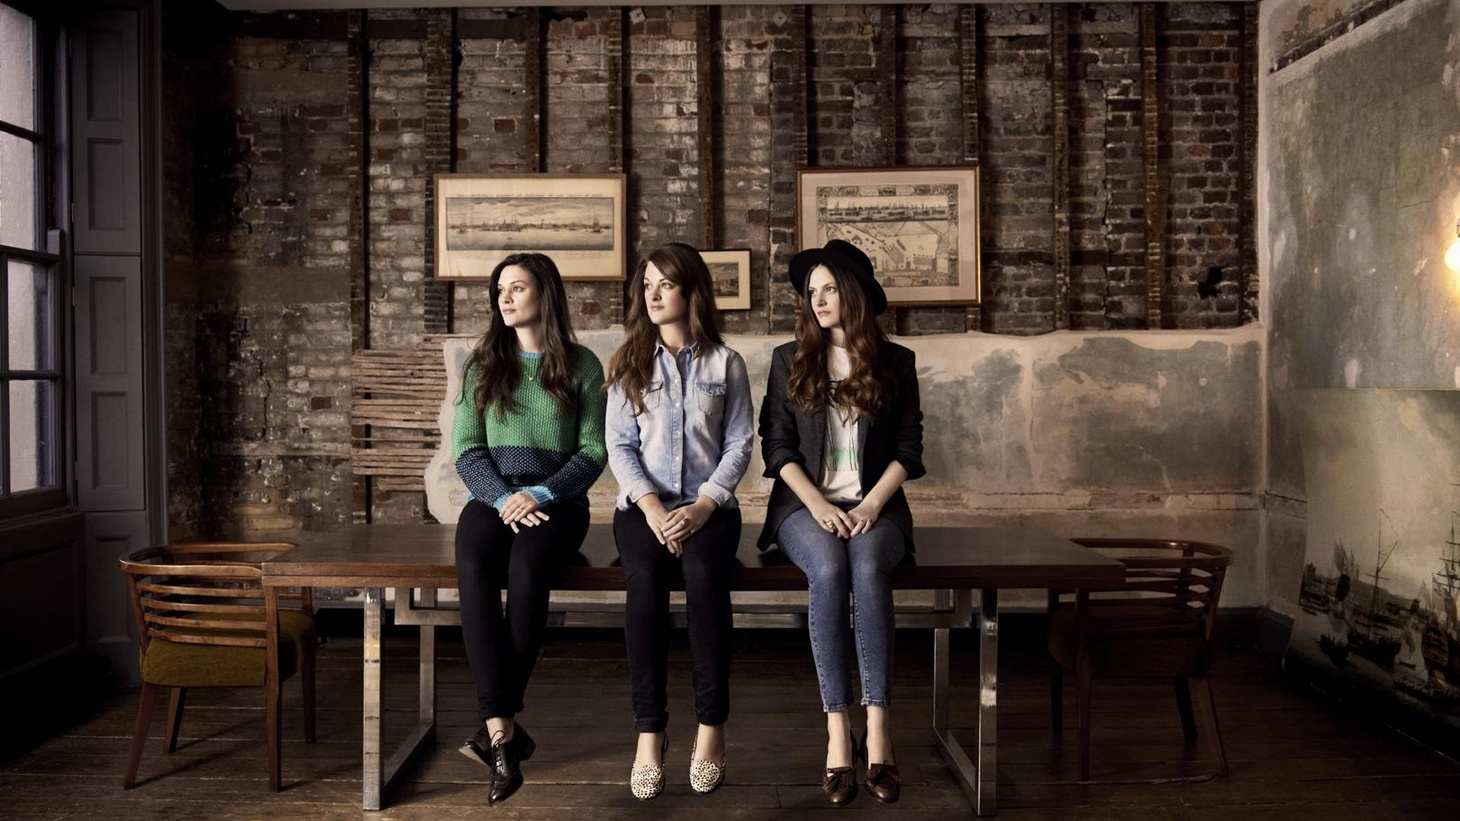 The Staves, a trio of English sisters, first came into prominence on Tom Jones' 2010 gospel CD. However, their own work is inspired by classic British folk.